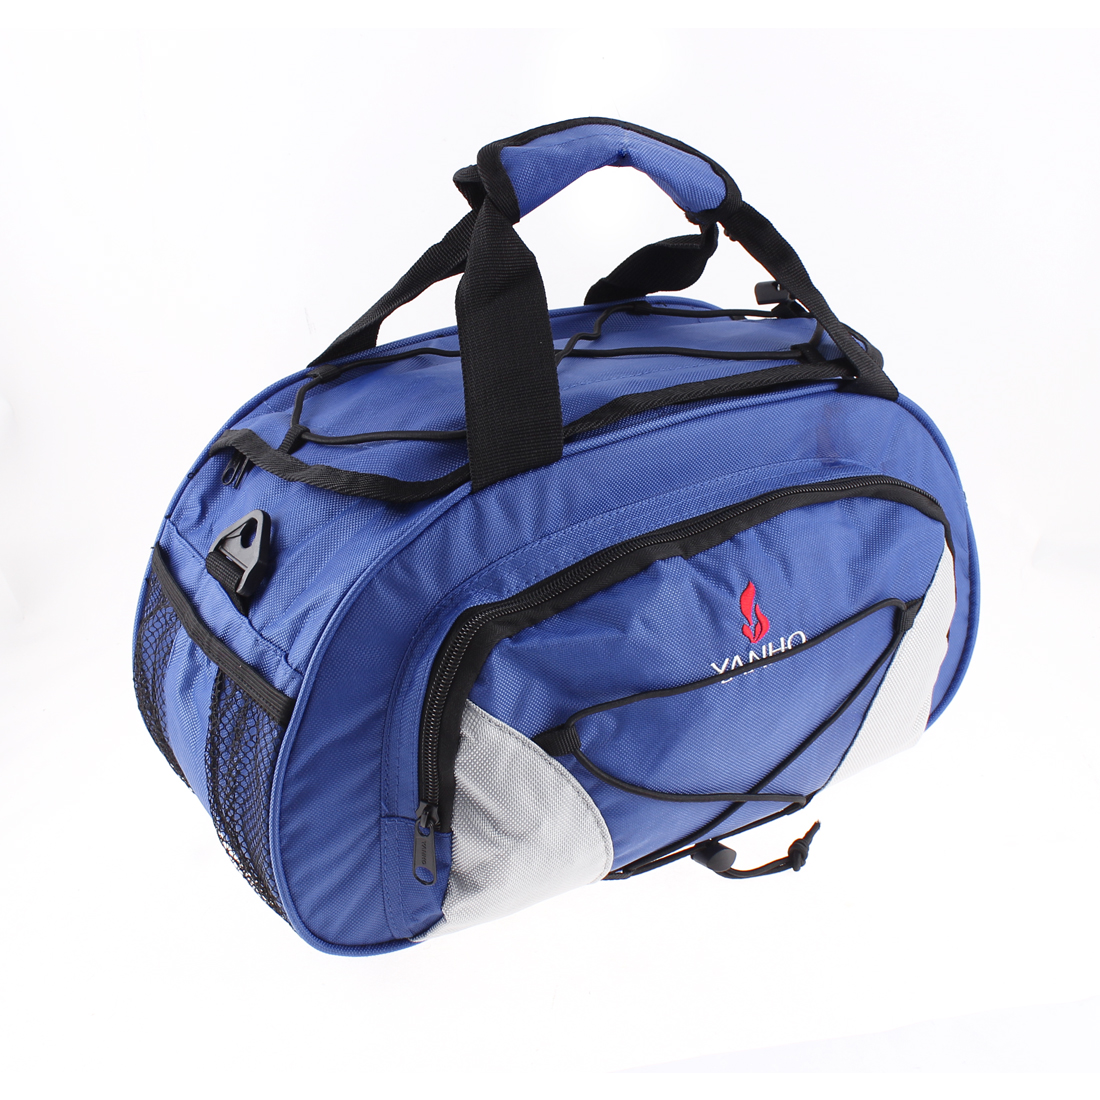 Cycling Bike Bicycle Rear Seat Trunk Bag Handbag Storage Pannier Blue